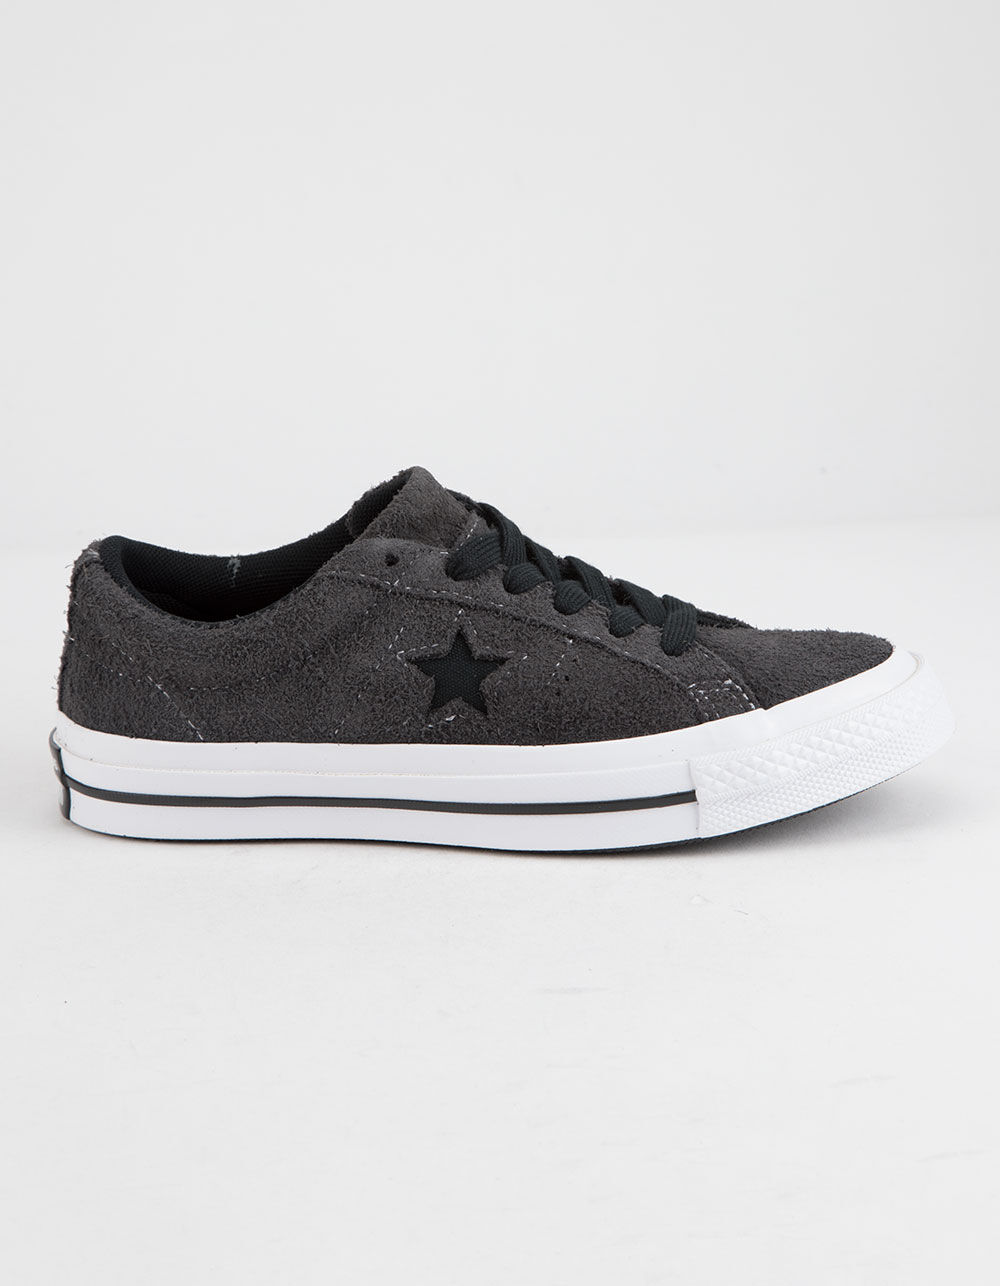 CONVERSE One Star Ox Almost Black Kids Shoes